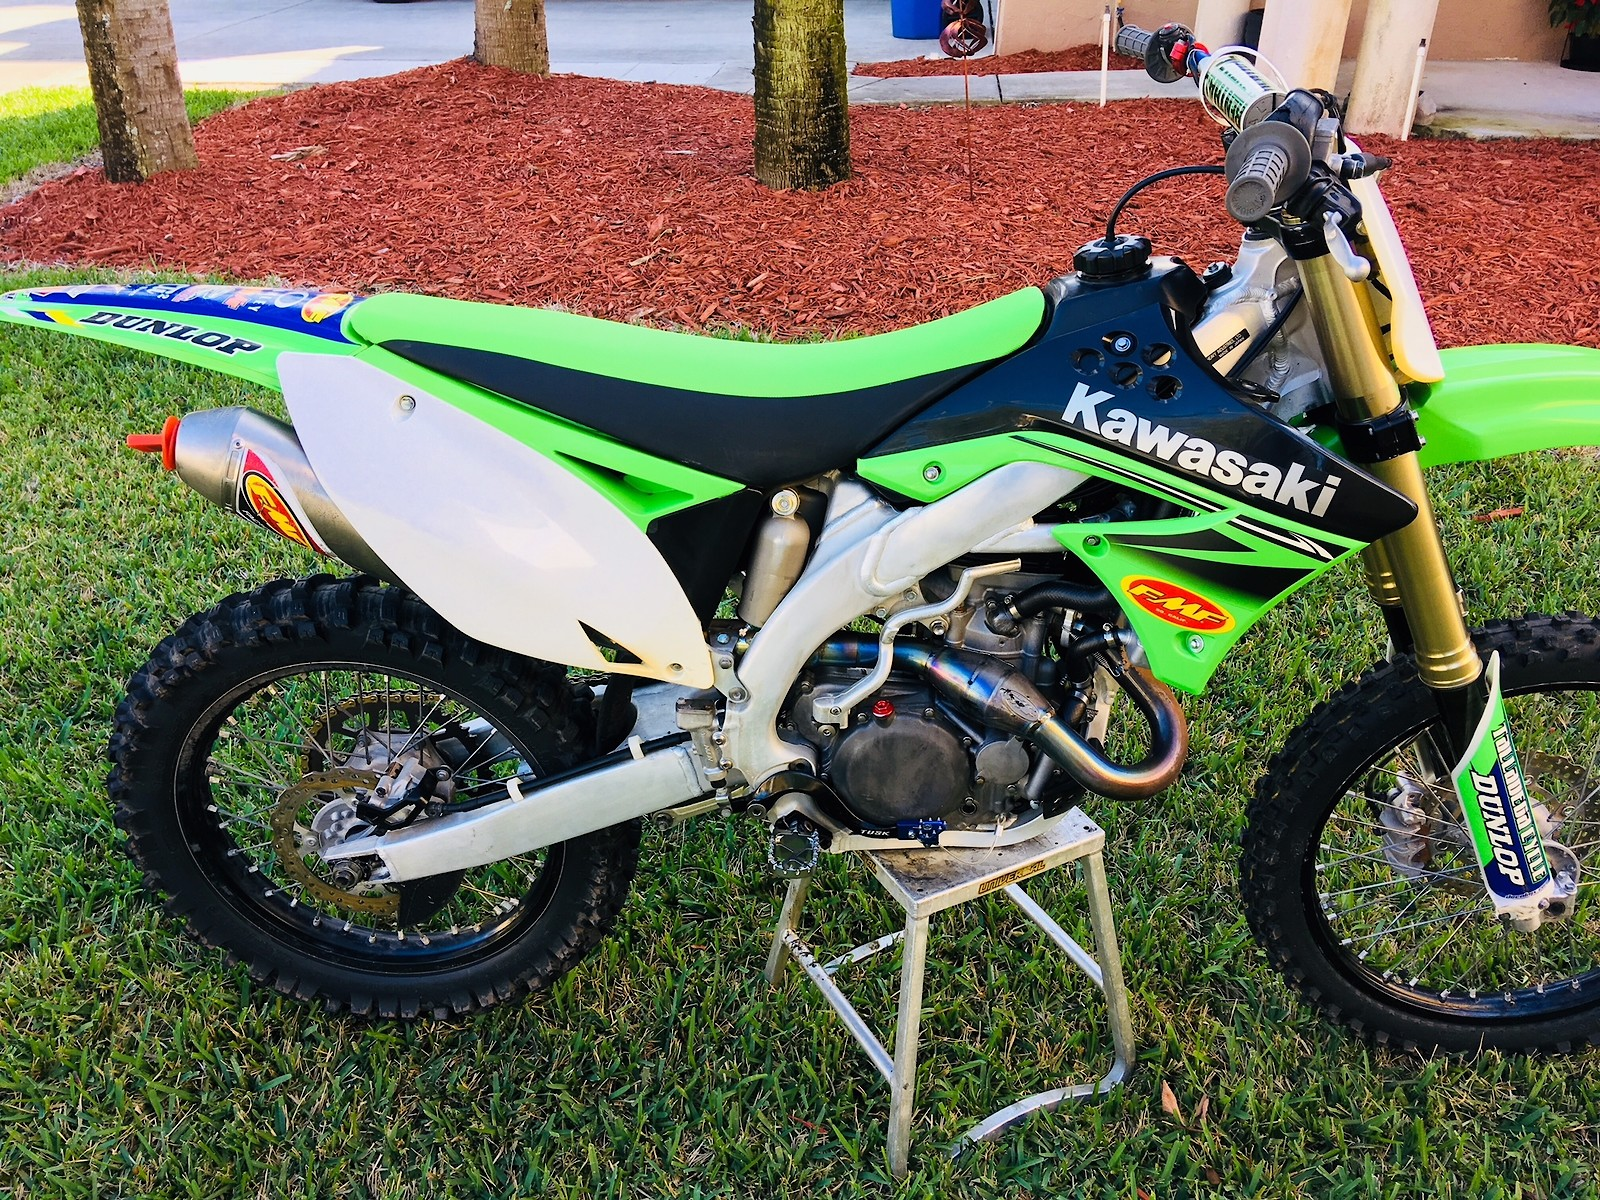 2010 Kx450f Exc Cond For Sale Bazaar Motocross Forums Message Fuel Filter Injected